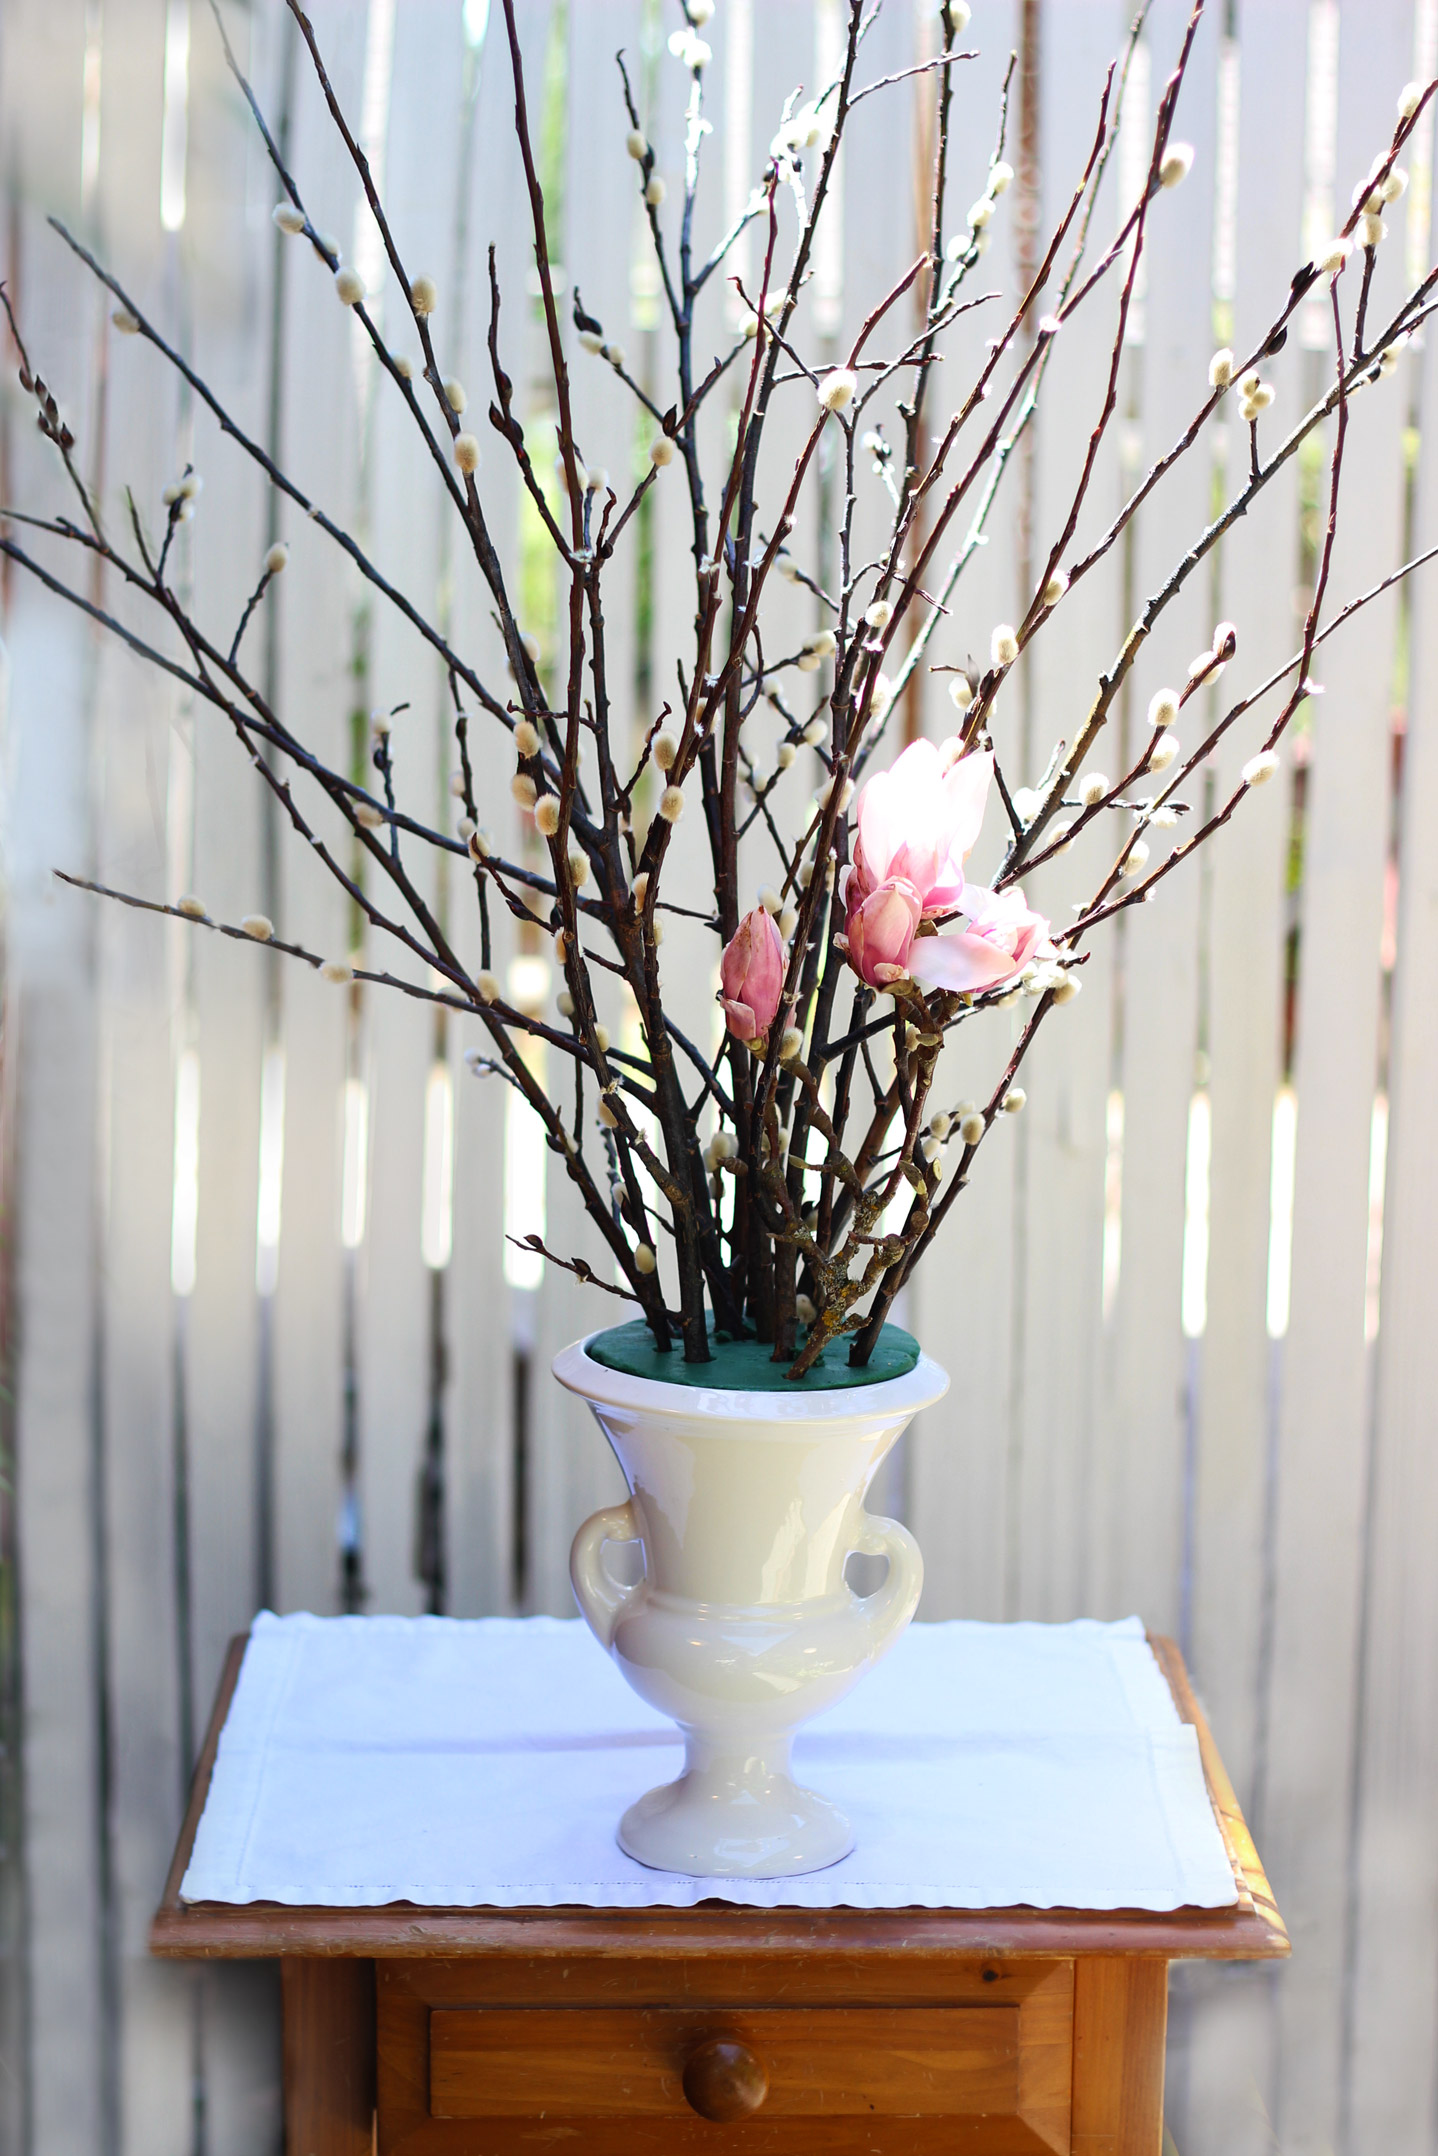 Add lower Purple Magnolias going out at an angle like the Pussy Willow.